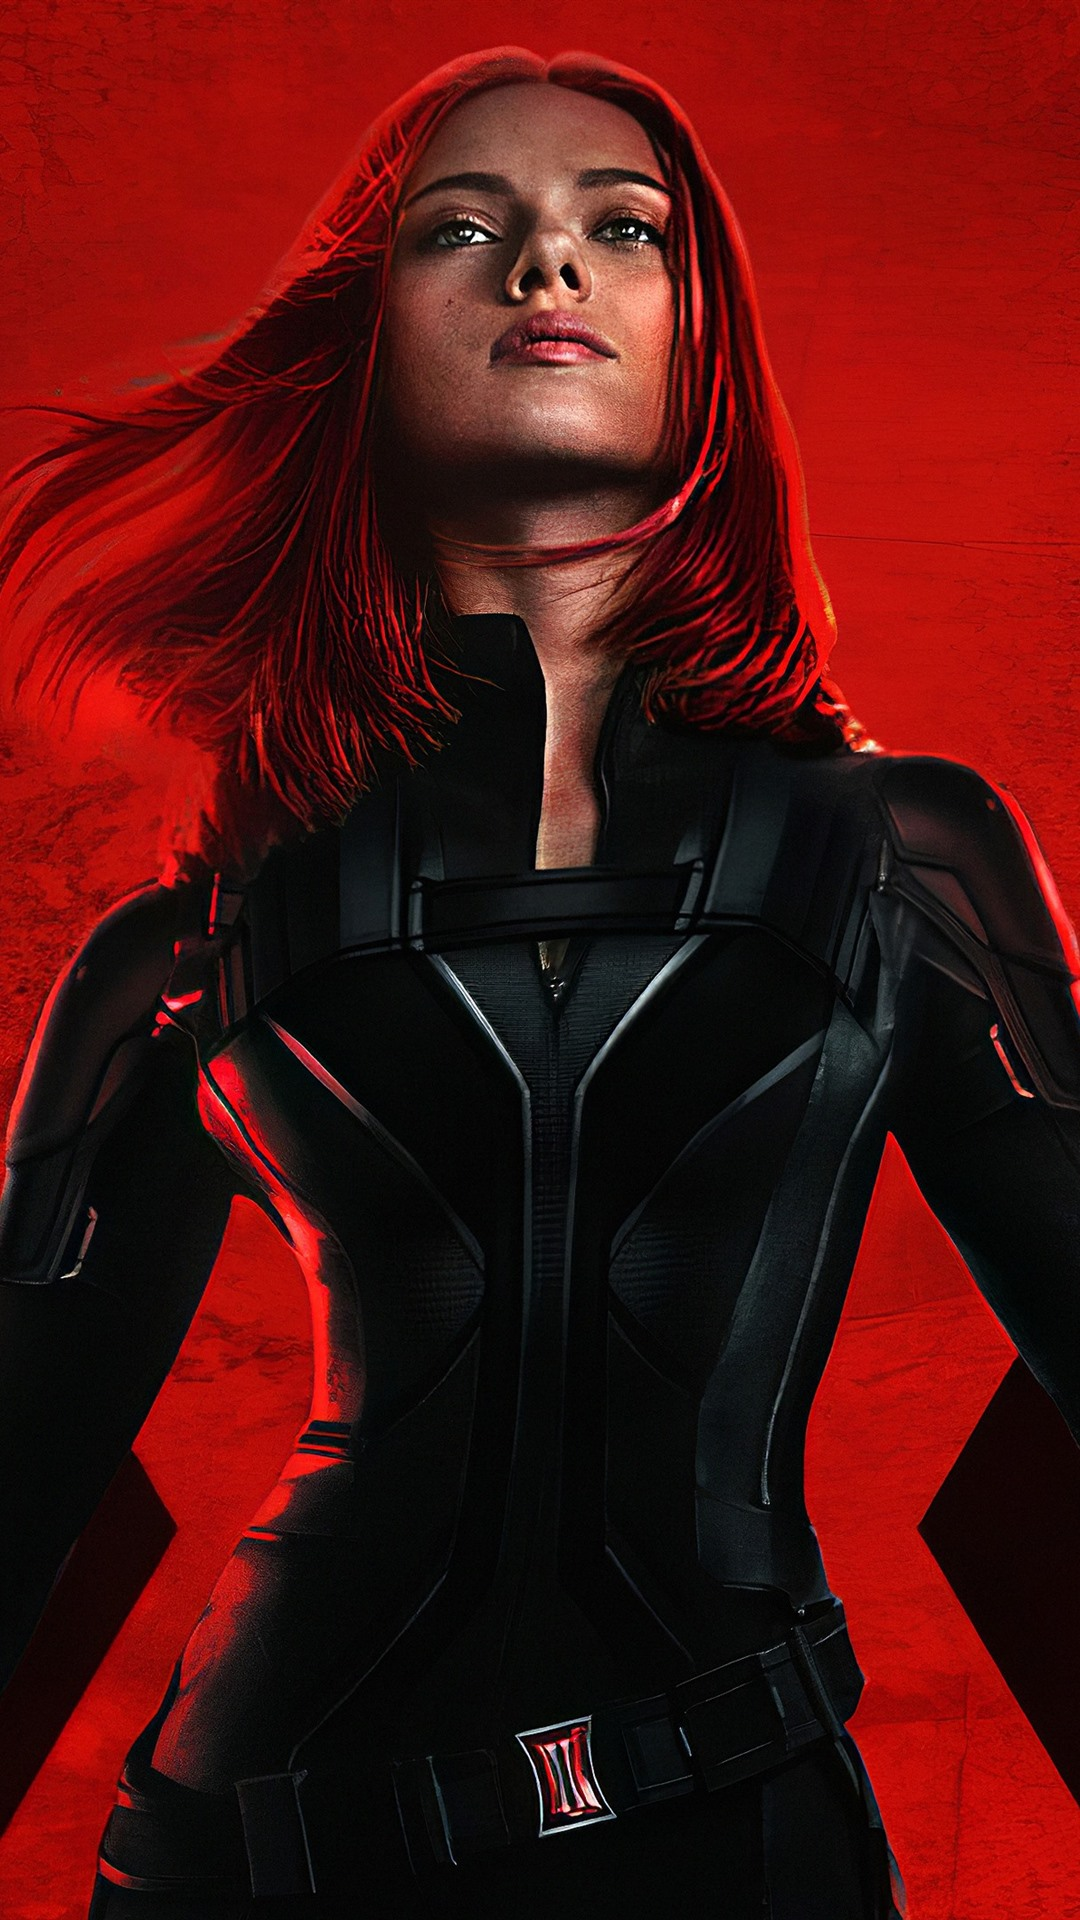 Wallpaper Black Widow 2020 3840x2160 UHD 4K Picture, Image